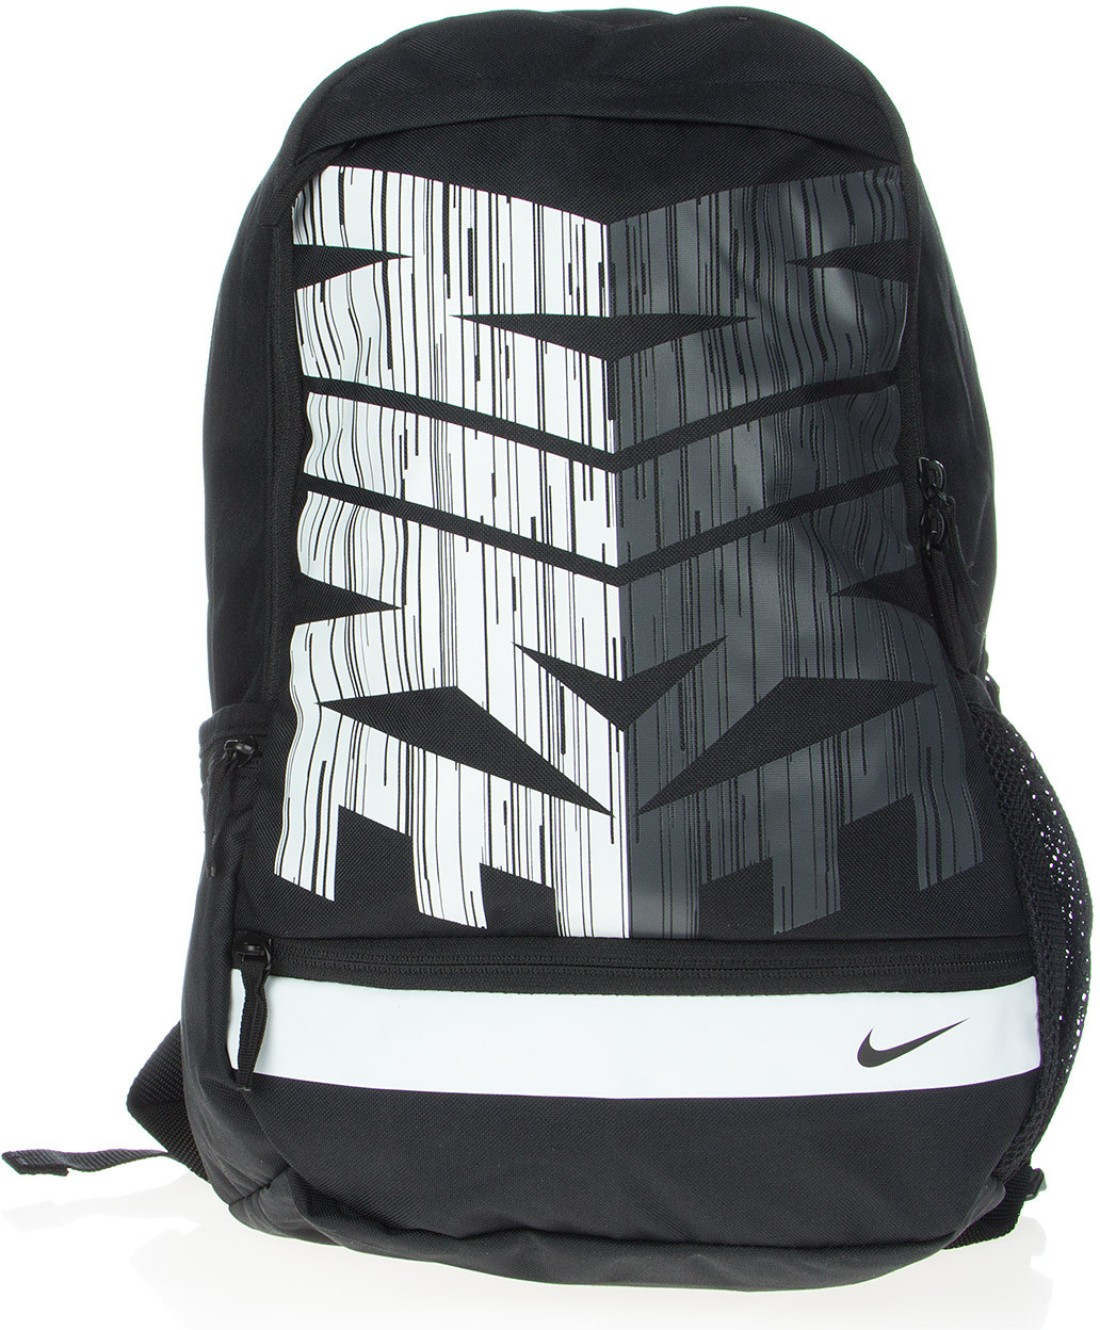 Gym Bag Flipkart: Nike Classic Line Unisex Medium Backpack Black